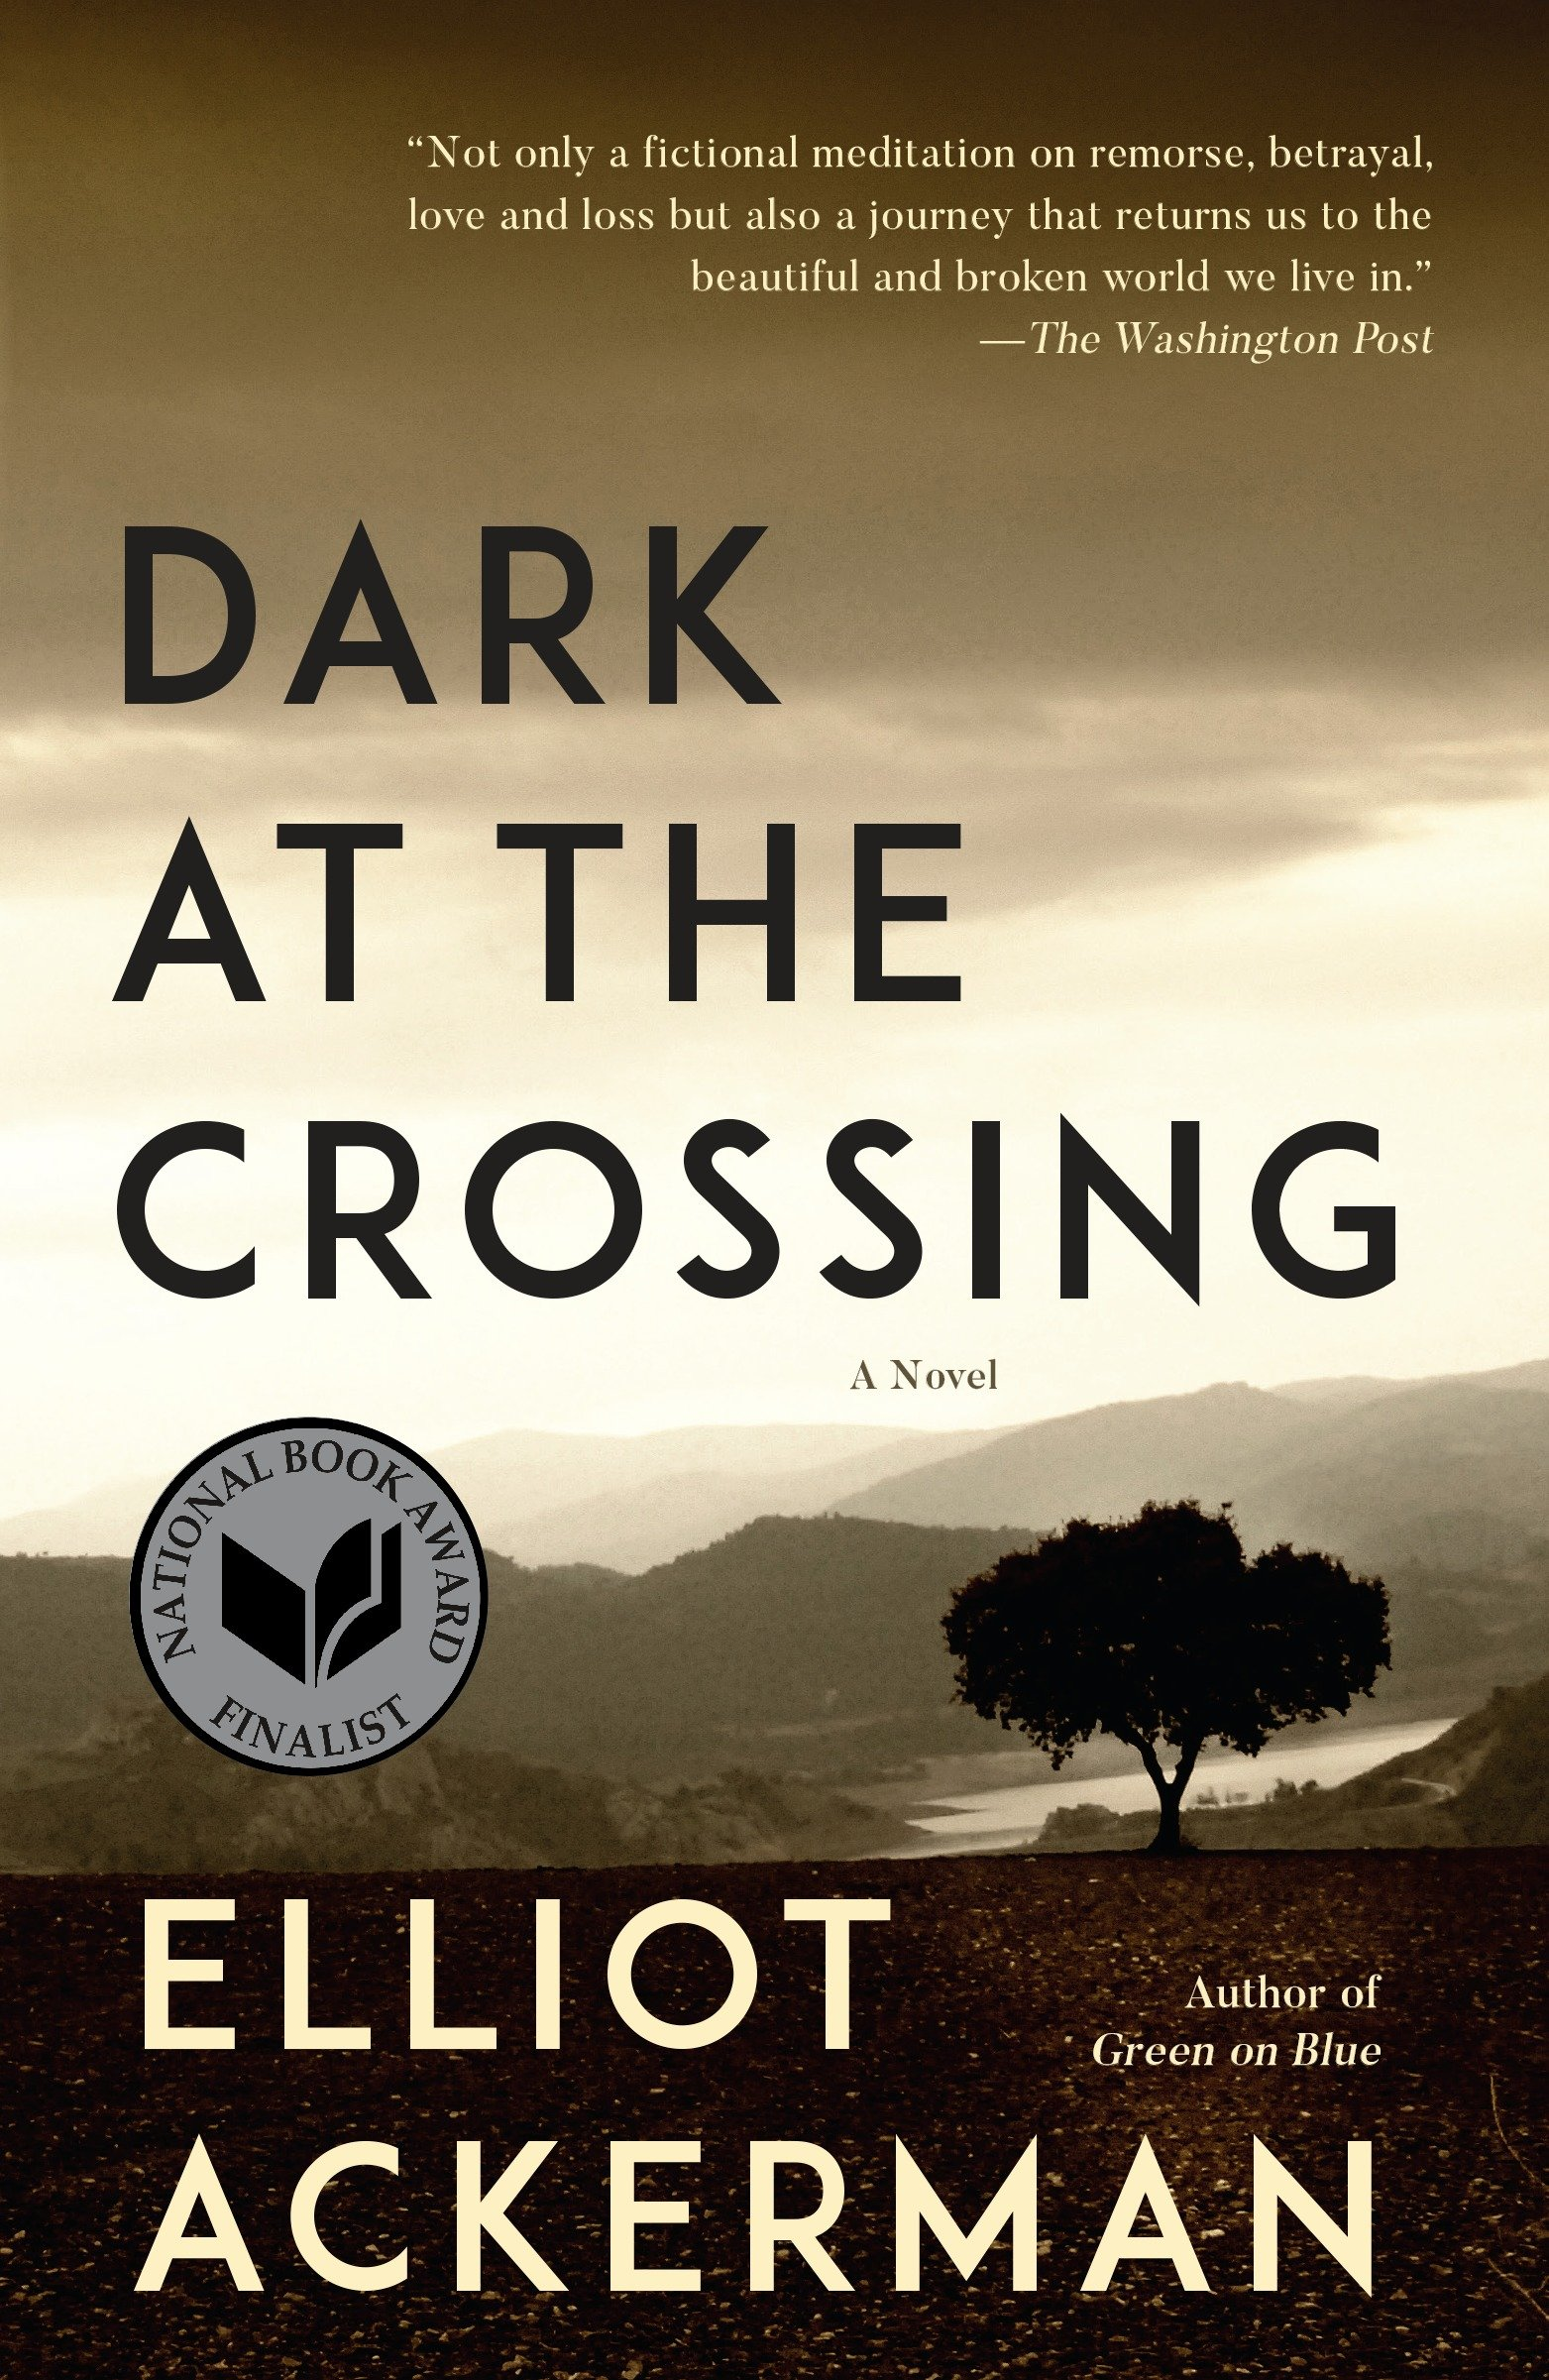 Download ebook Dark at the Crossing